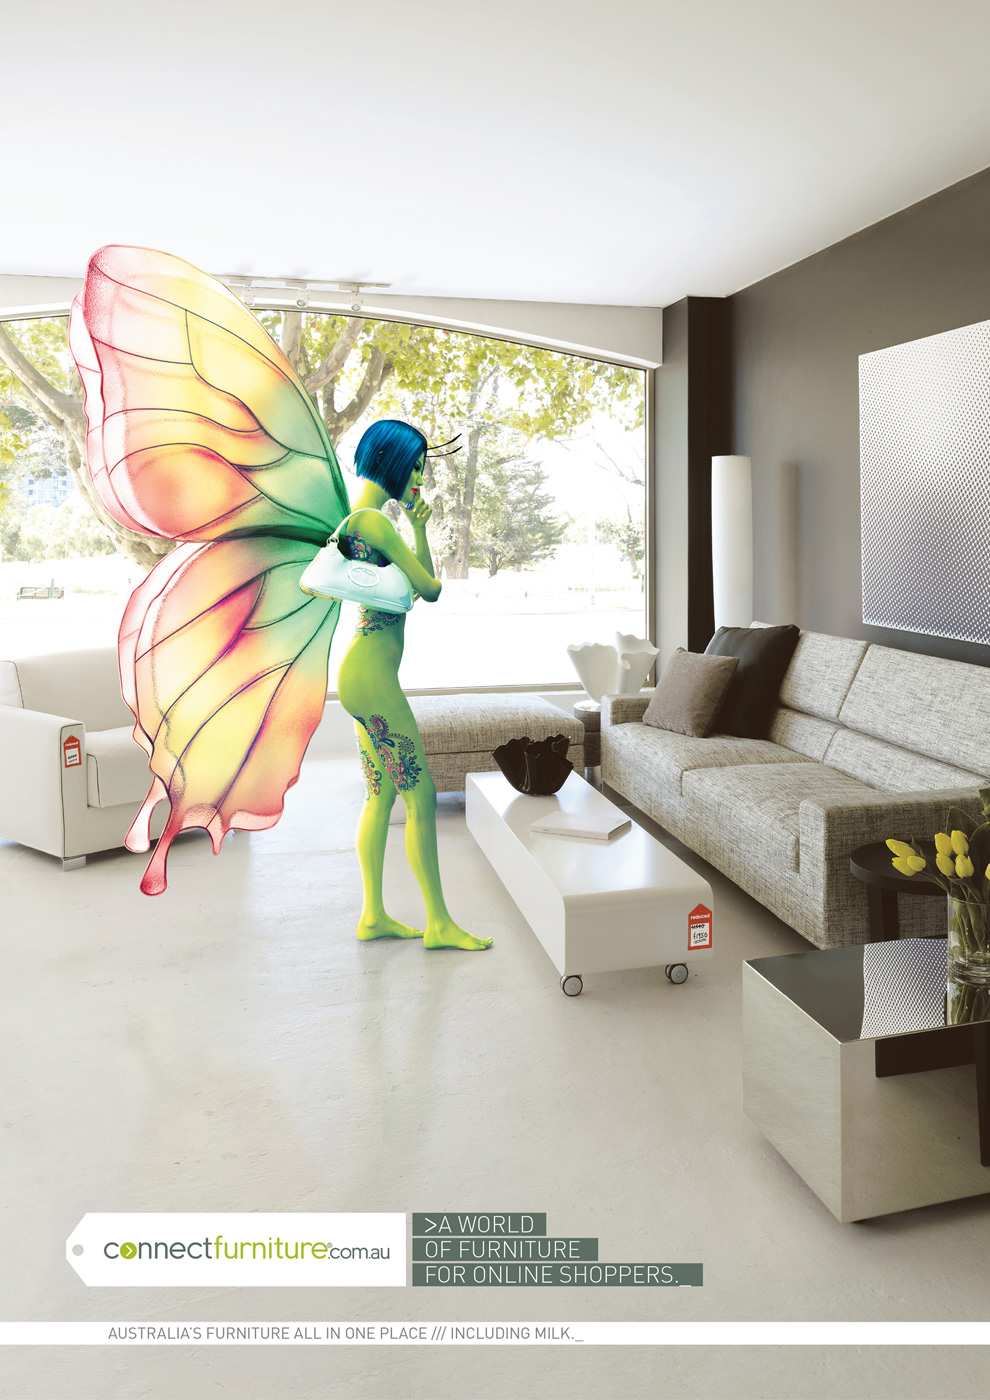 Connect Furniture Print Ad   Butterfly Girl Avatar